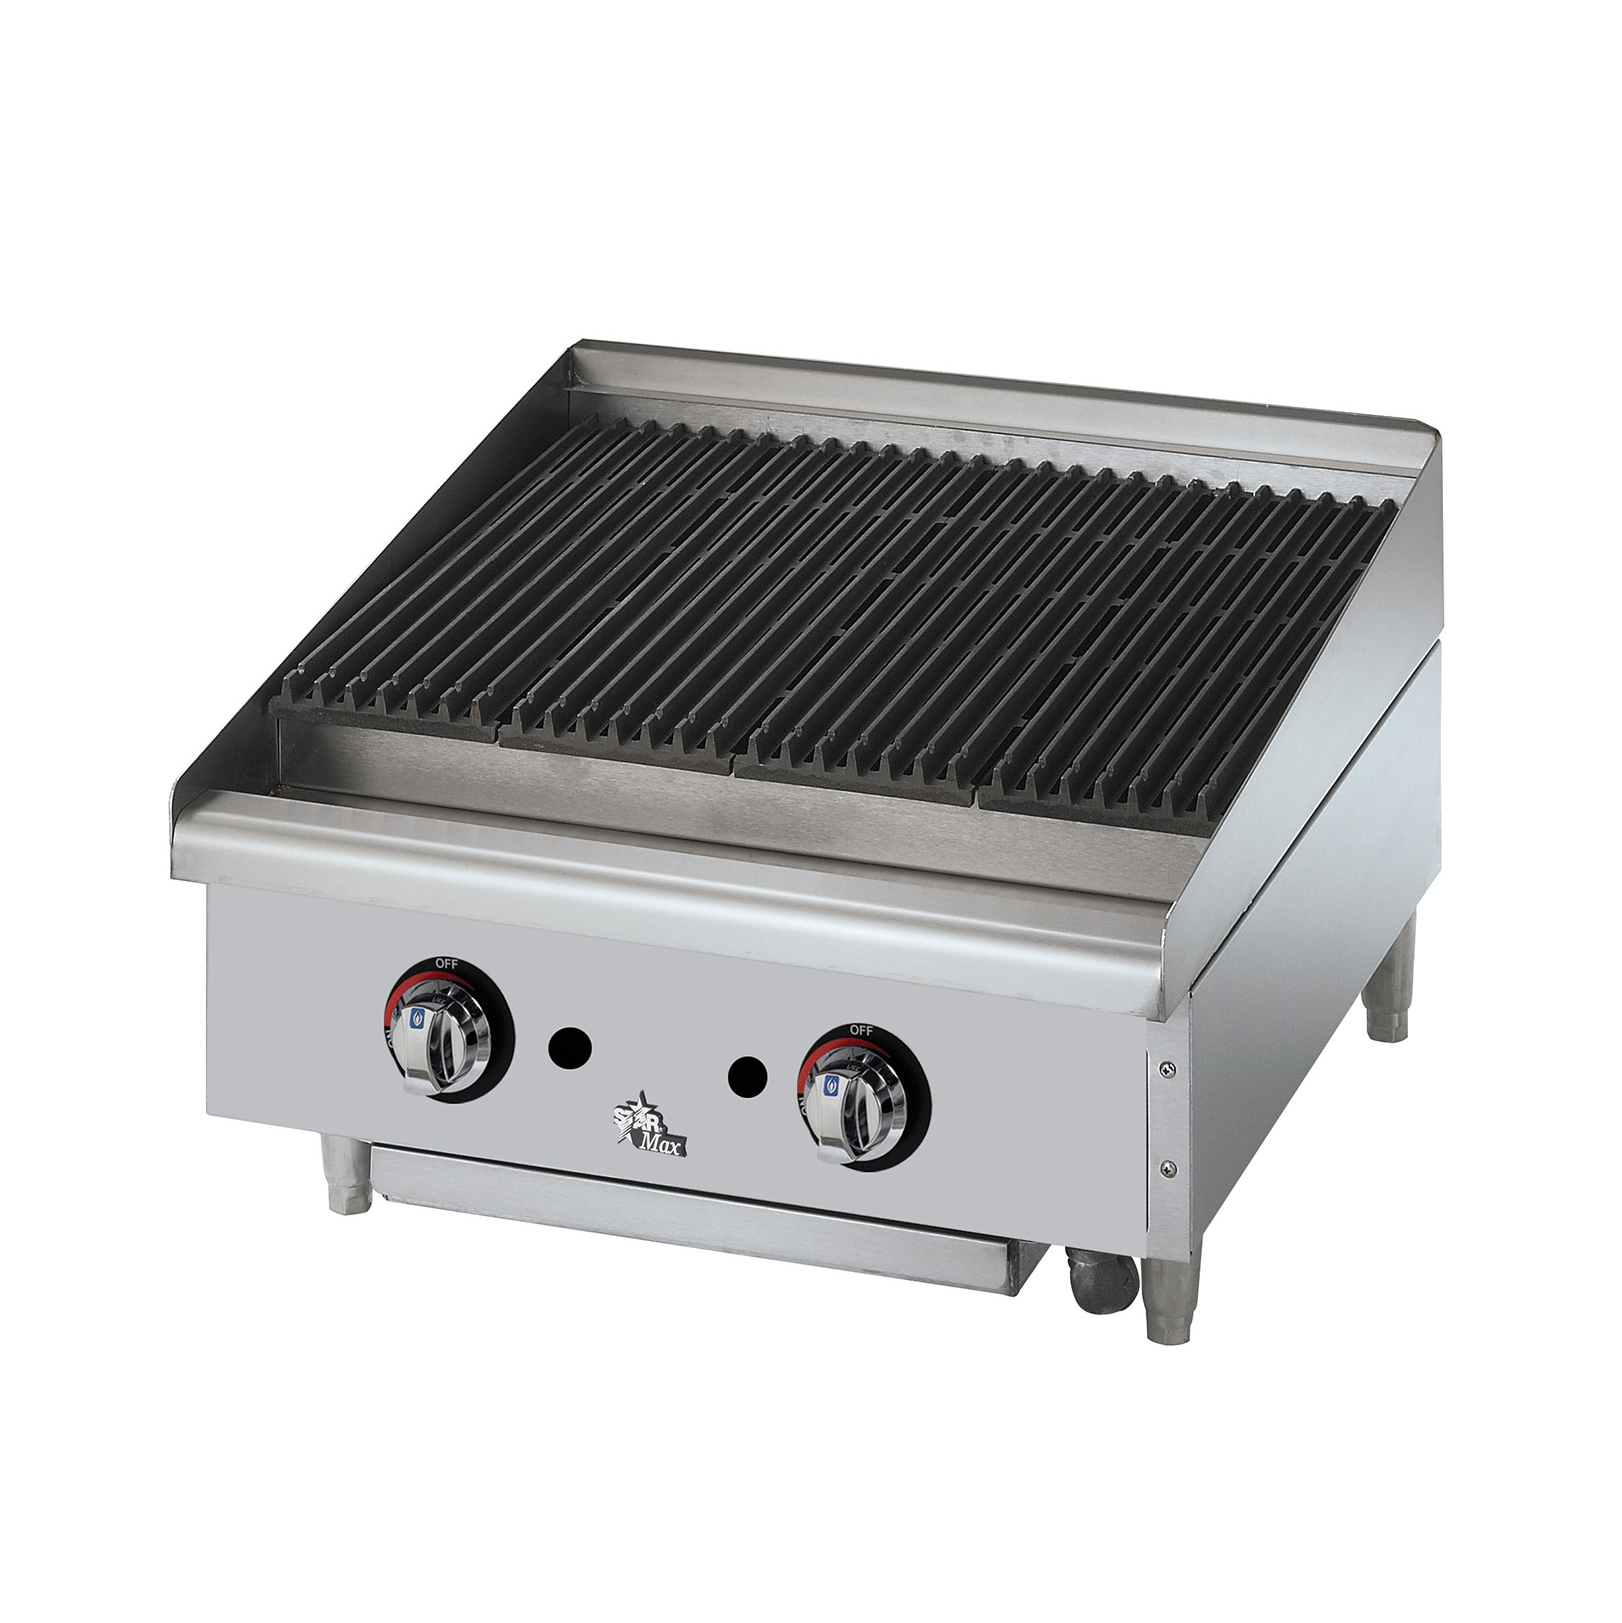 Star 6024CBF charbroiler, gas, countertop